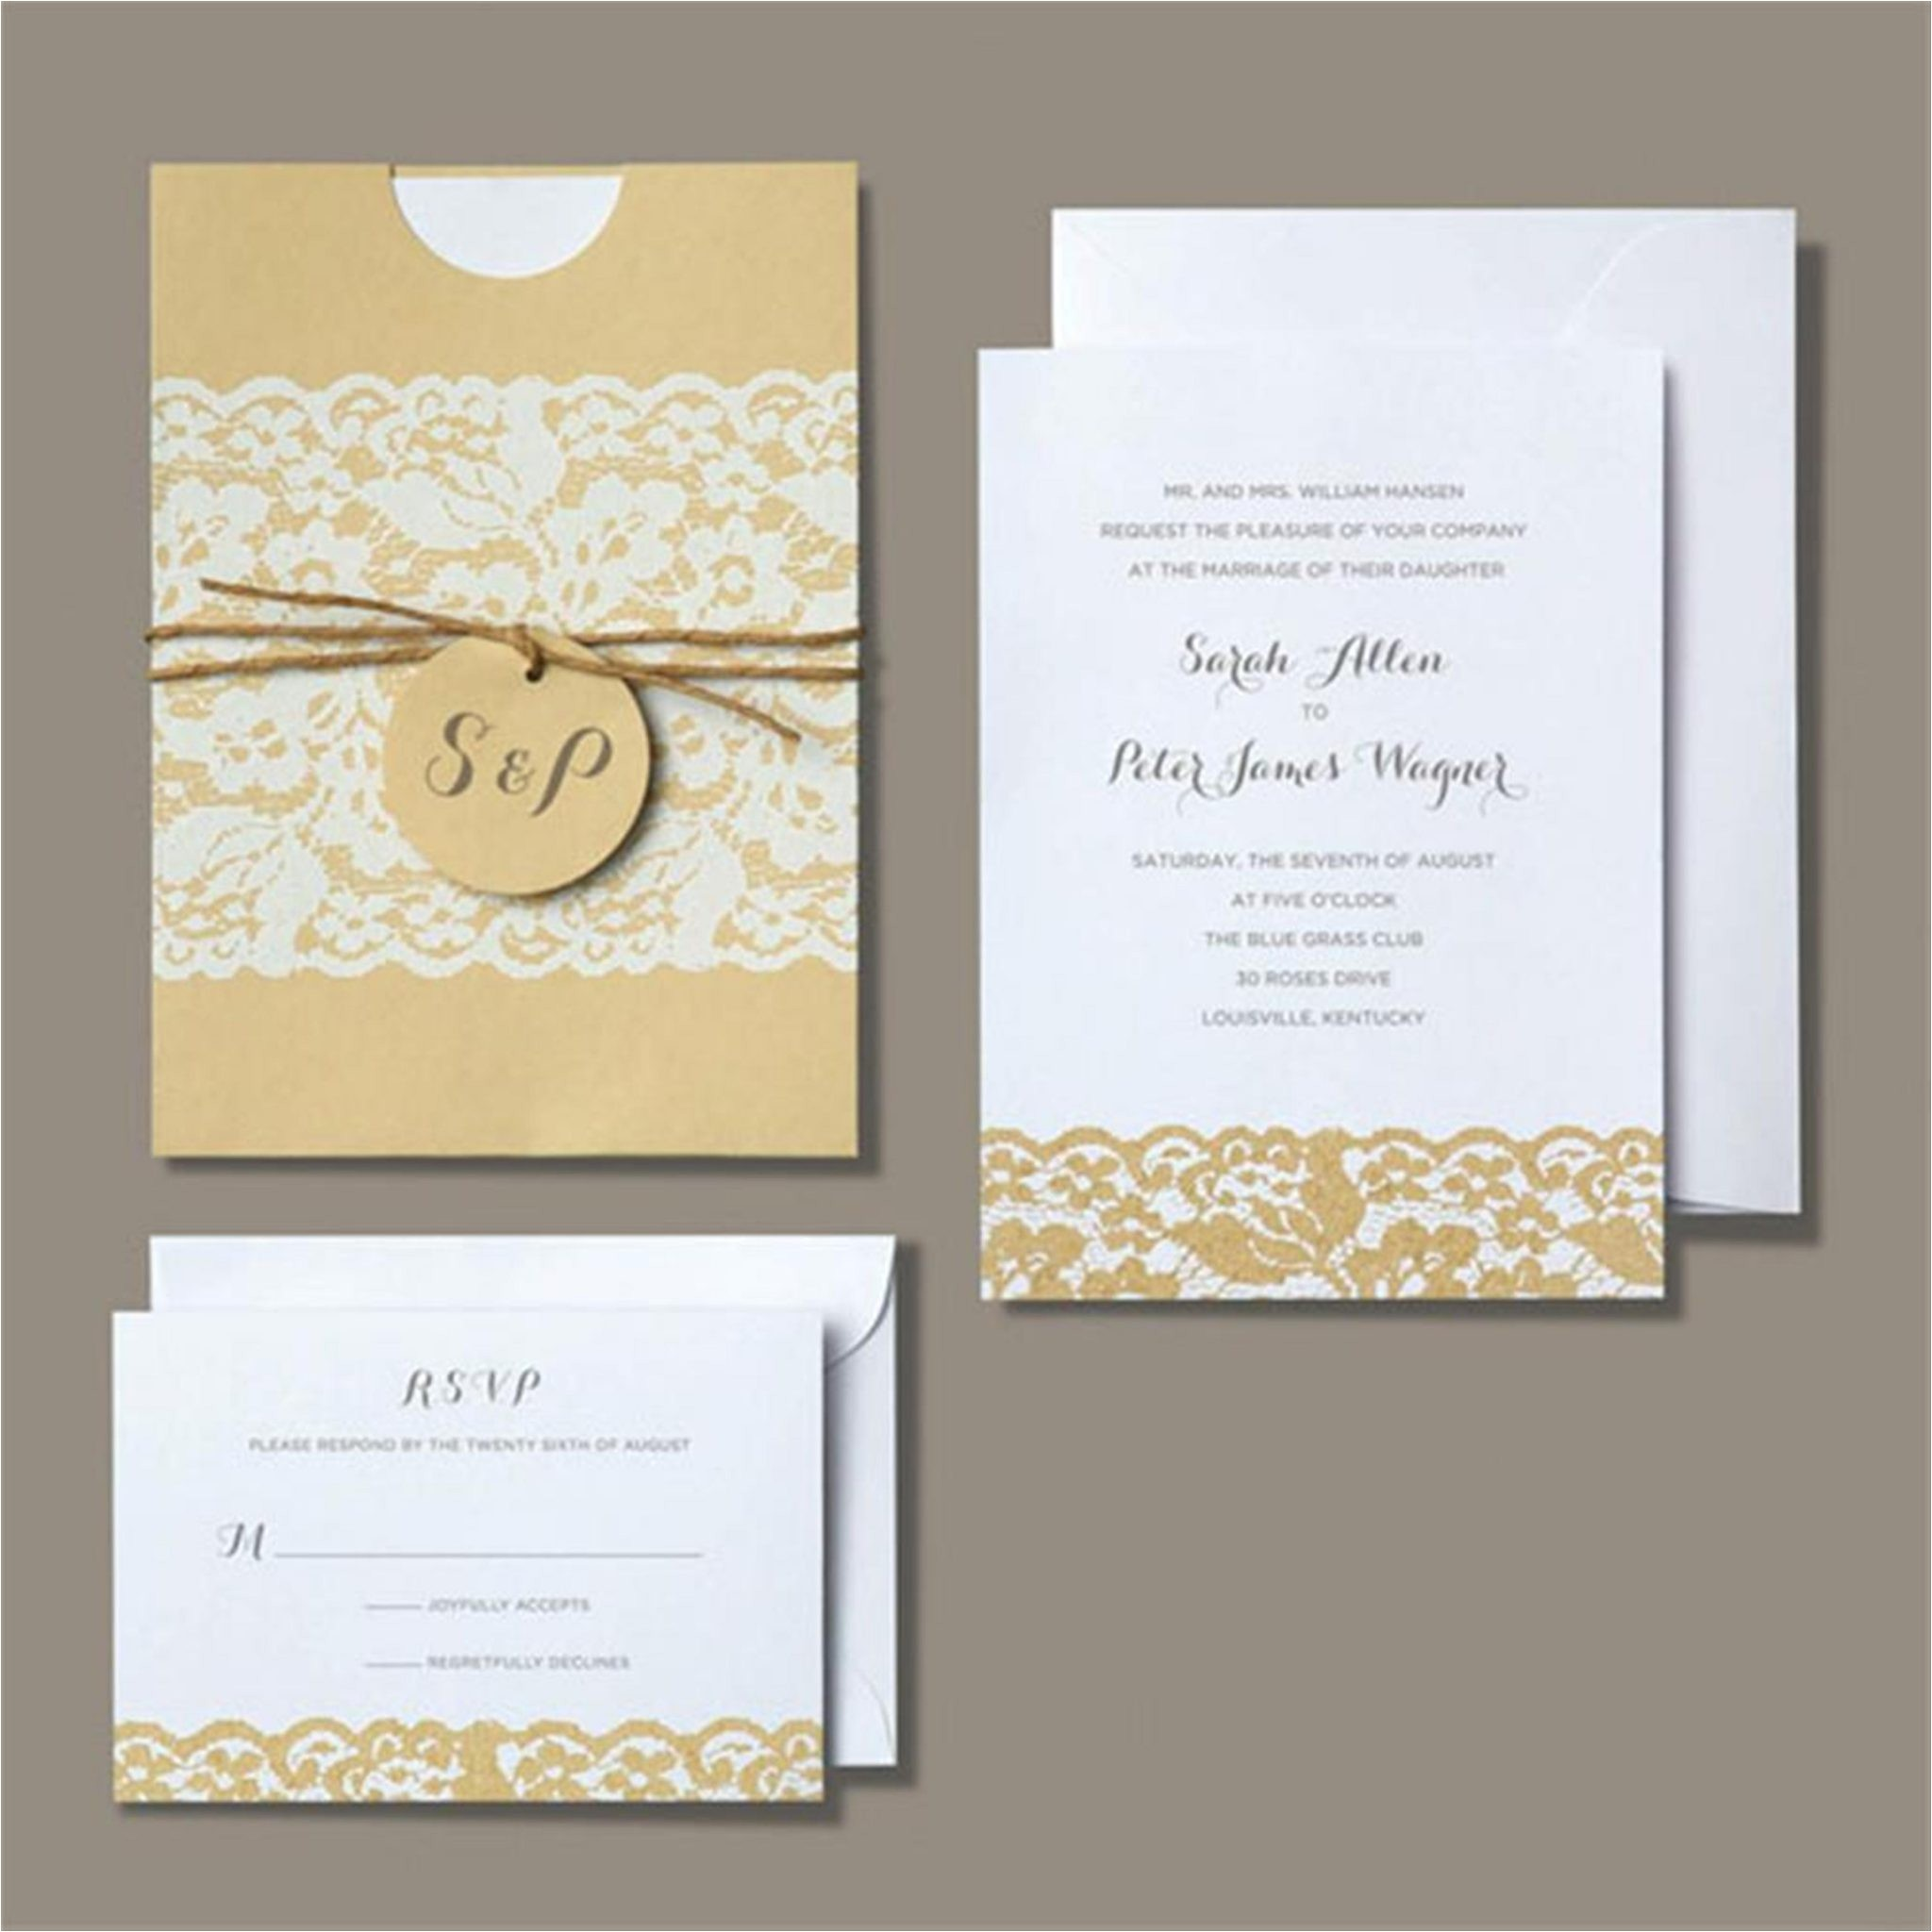 templates coed bridal shower invitation wording as well as